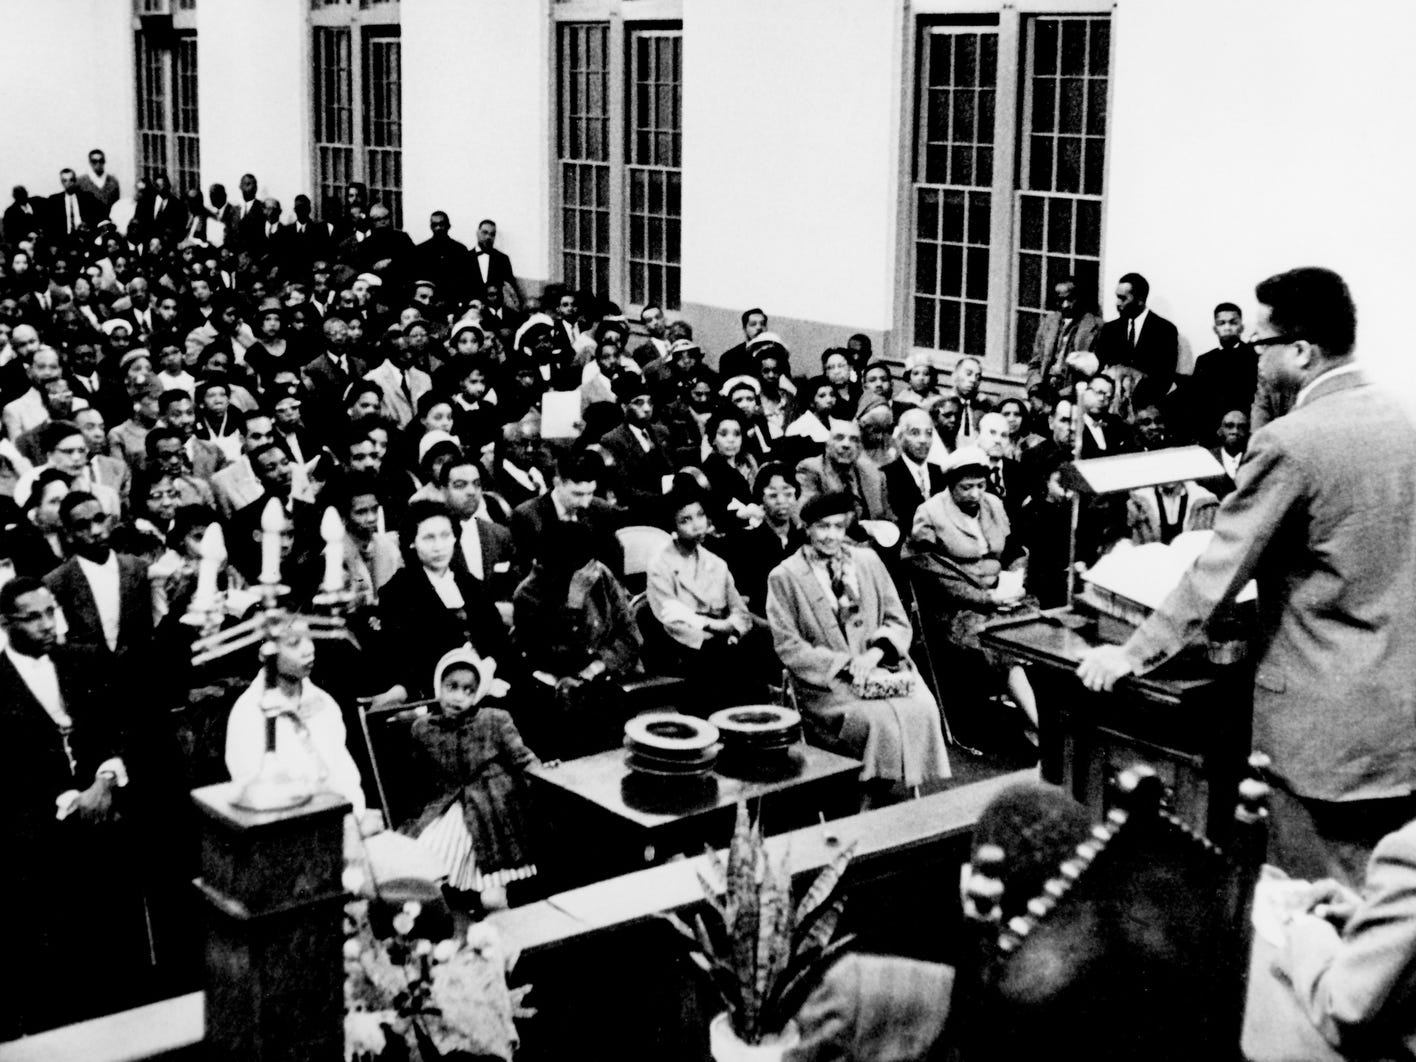 The Rev. James W. Lawson Jr. addresses a crowd at Gordon Memorial Methodist Church on Herman Street in a meeting on the lunch counter sit-ins March 7, 1960. Lawson, who studied Gandhi's techniques in Nagpur, India, conducted workshops on nonviolent strategy to aid Nashville students in ending segregation at the lunch counters.